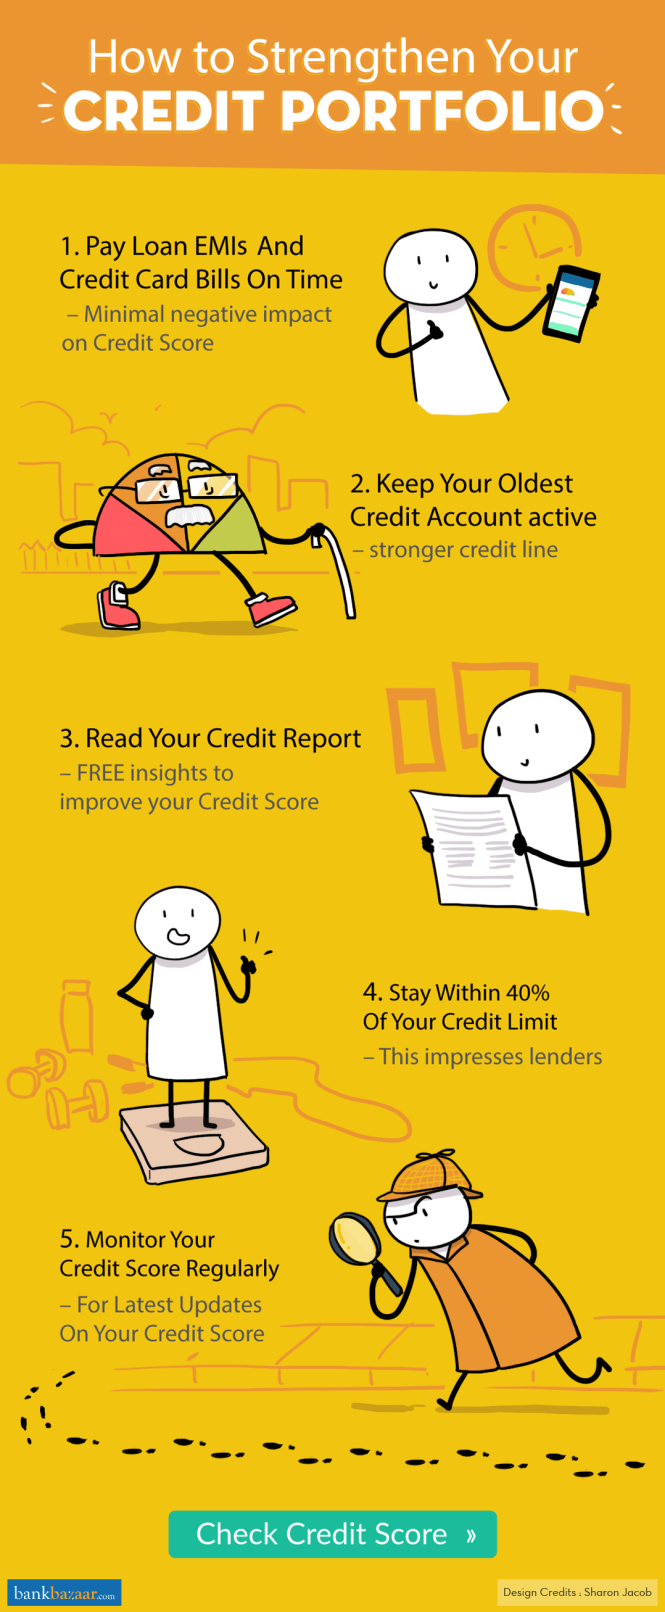 How to Strengthen Your Credit Portfolio